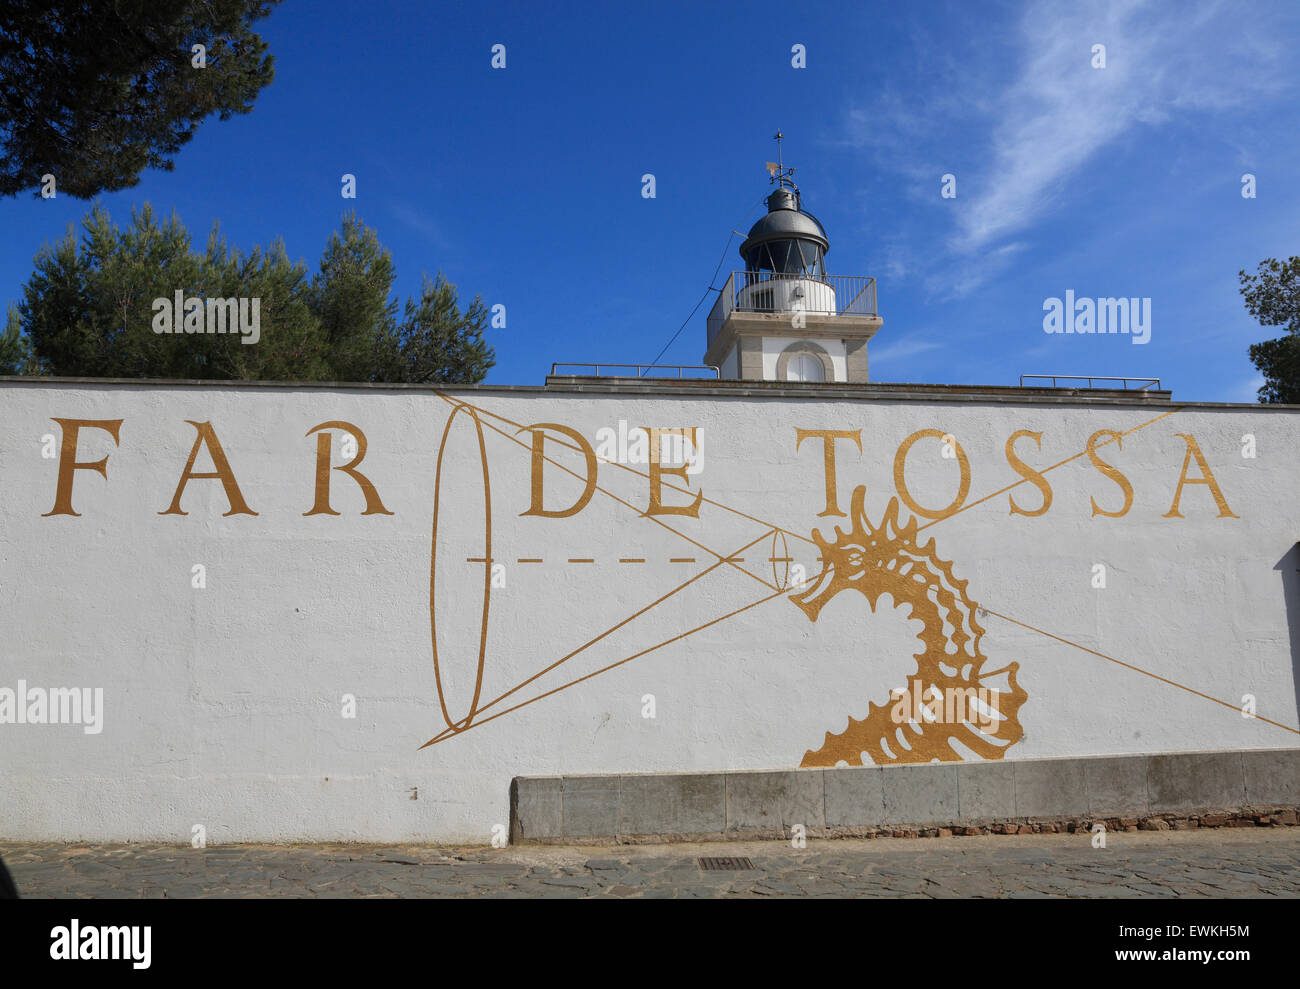 Tossa de Mar, lighthouse, Costa Brava, Catalona, Spain, Europe - Stock Image